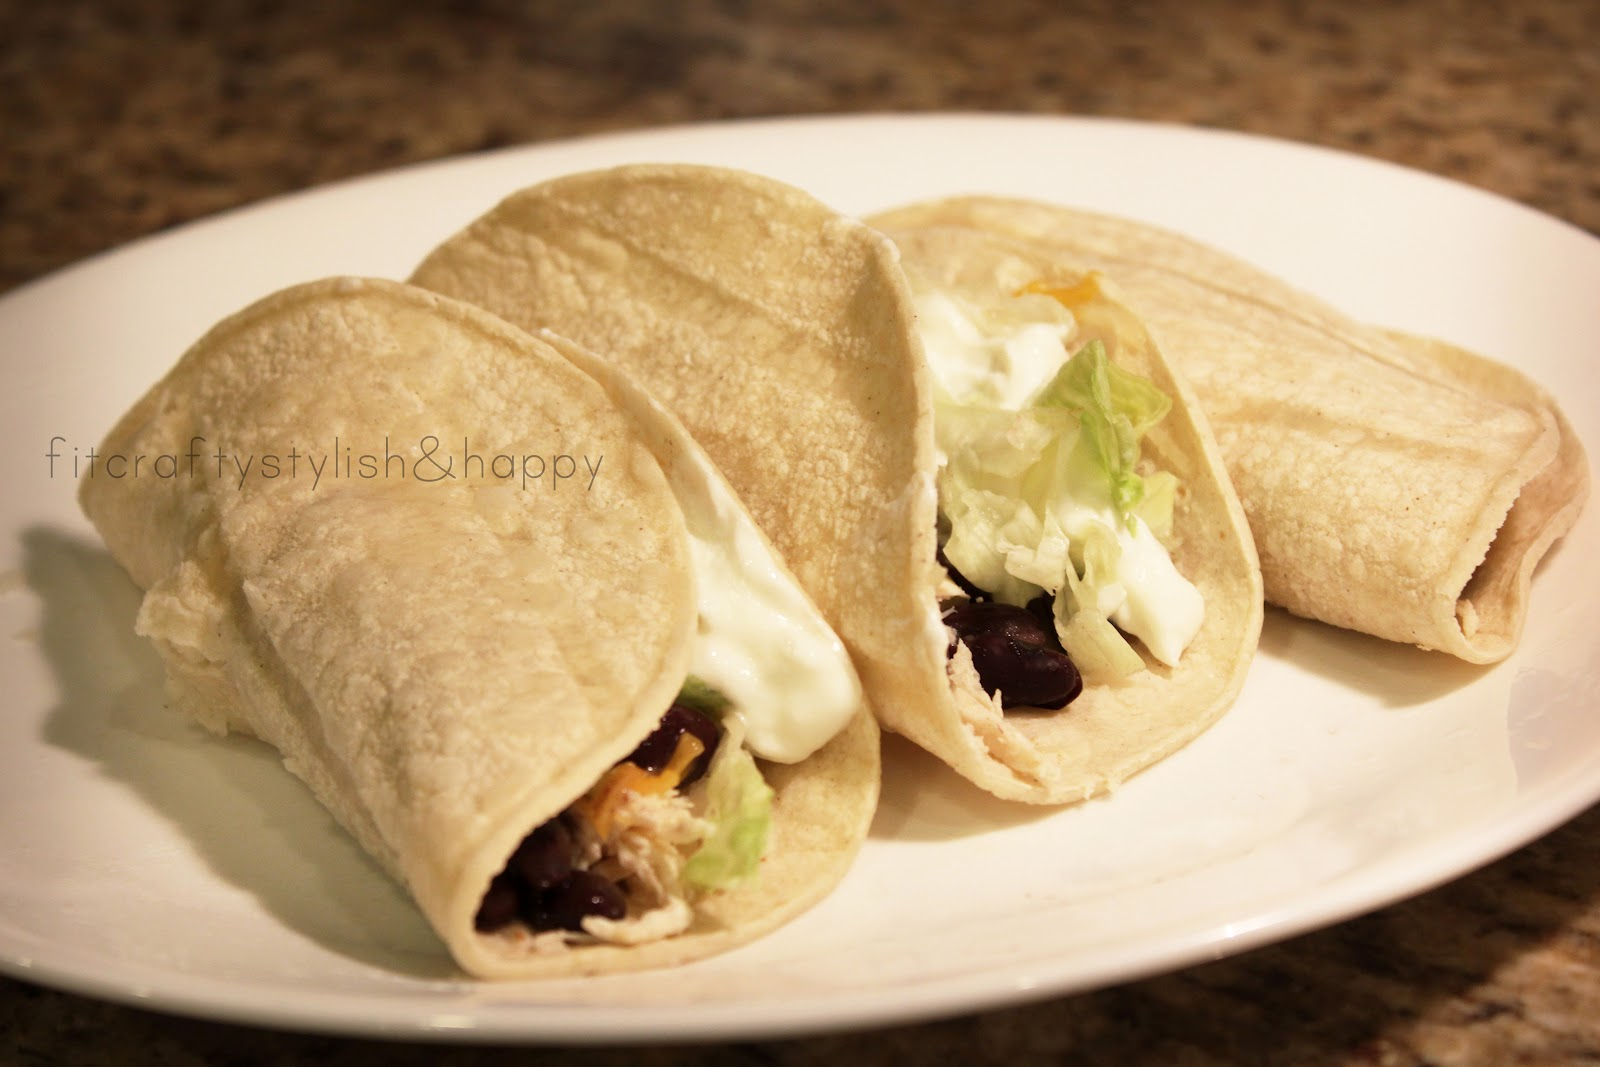 Fit, Crafty, Stylish and Happy: Chicken and Black Bean Tacos